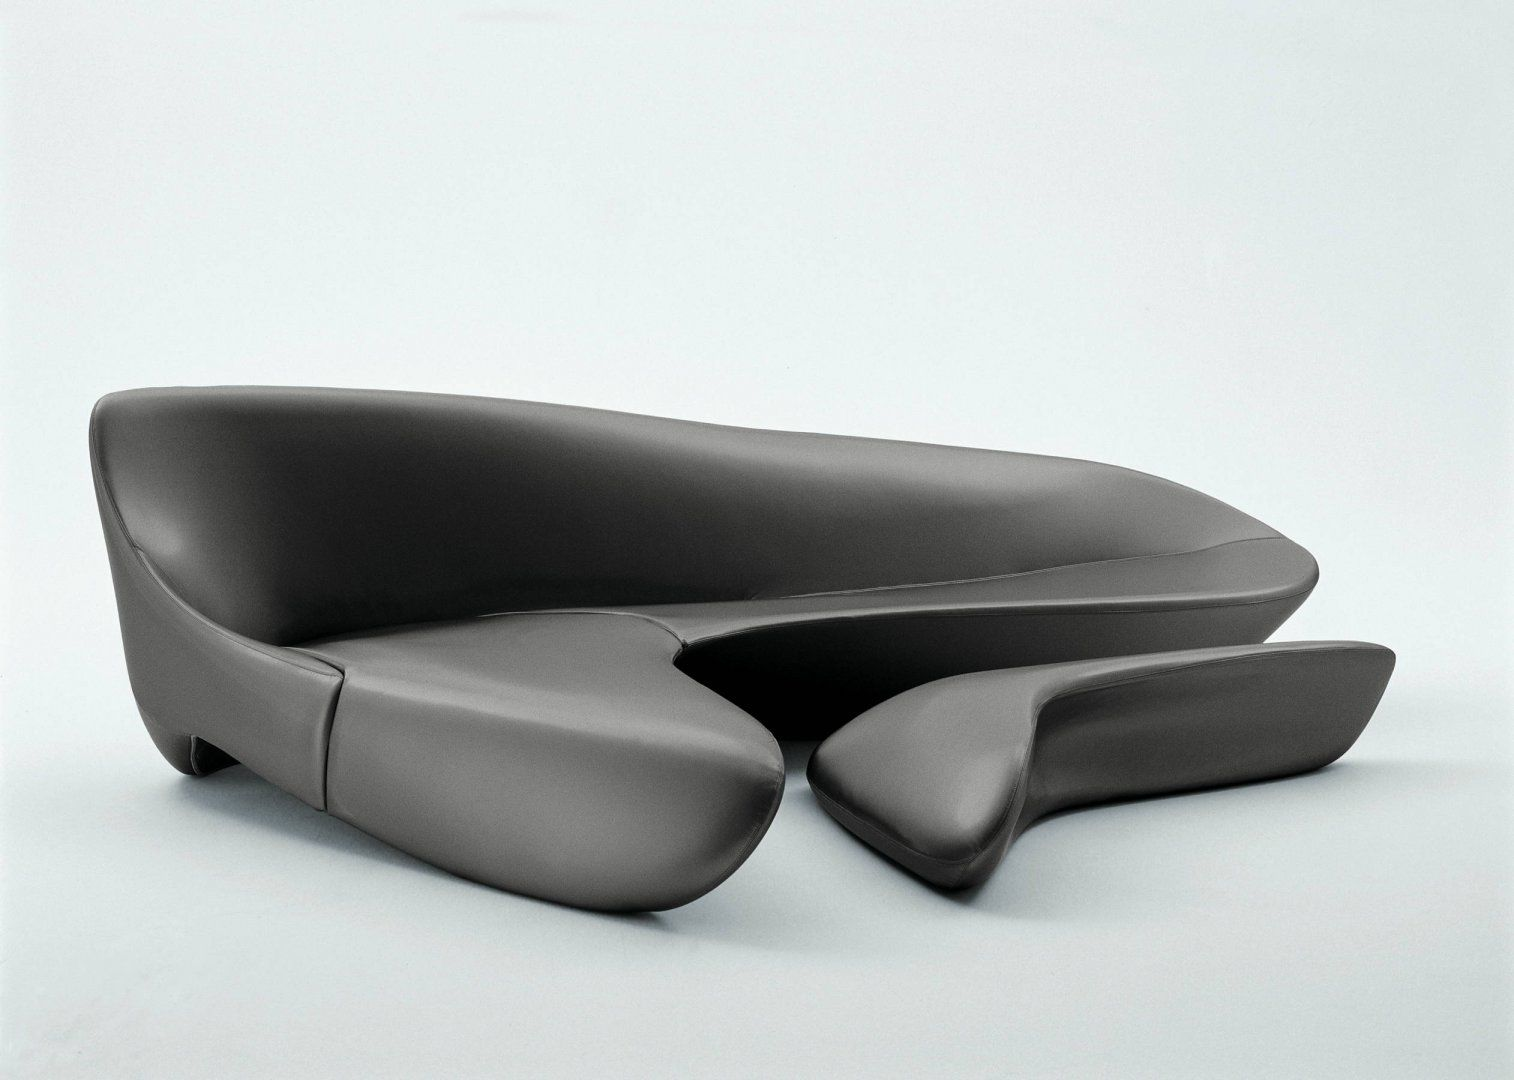 Moon System Sofa and coffee table by Zaha Hadid Architects